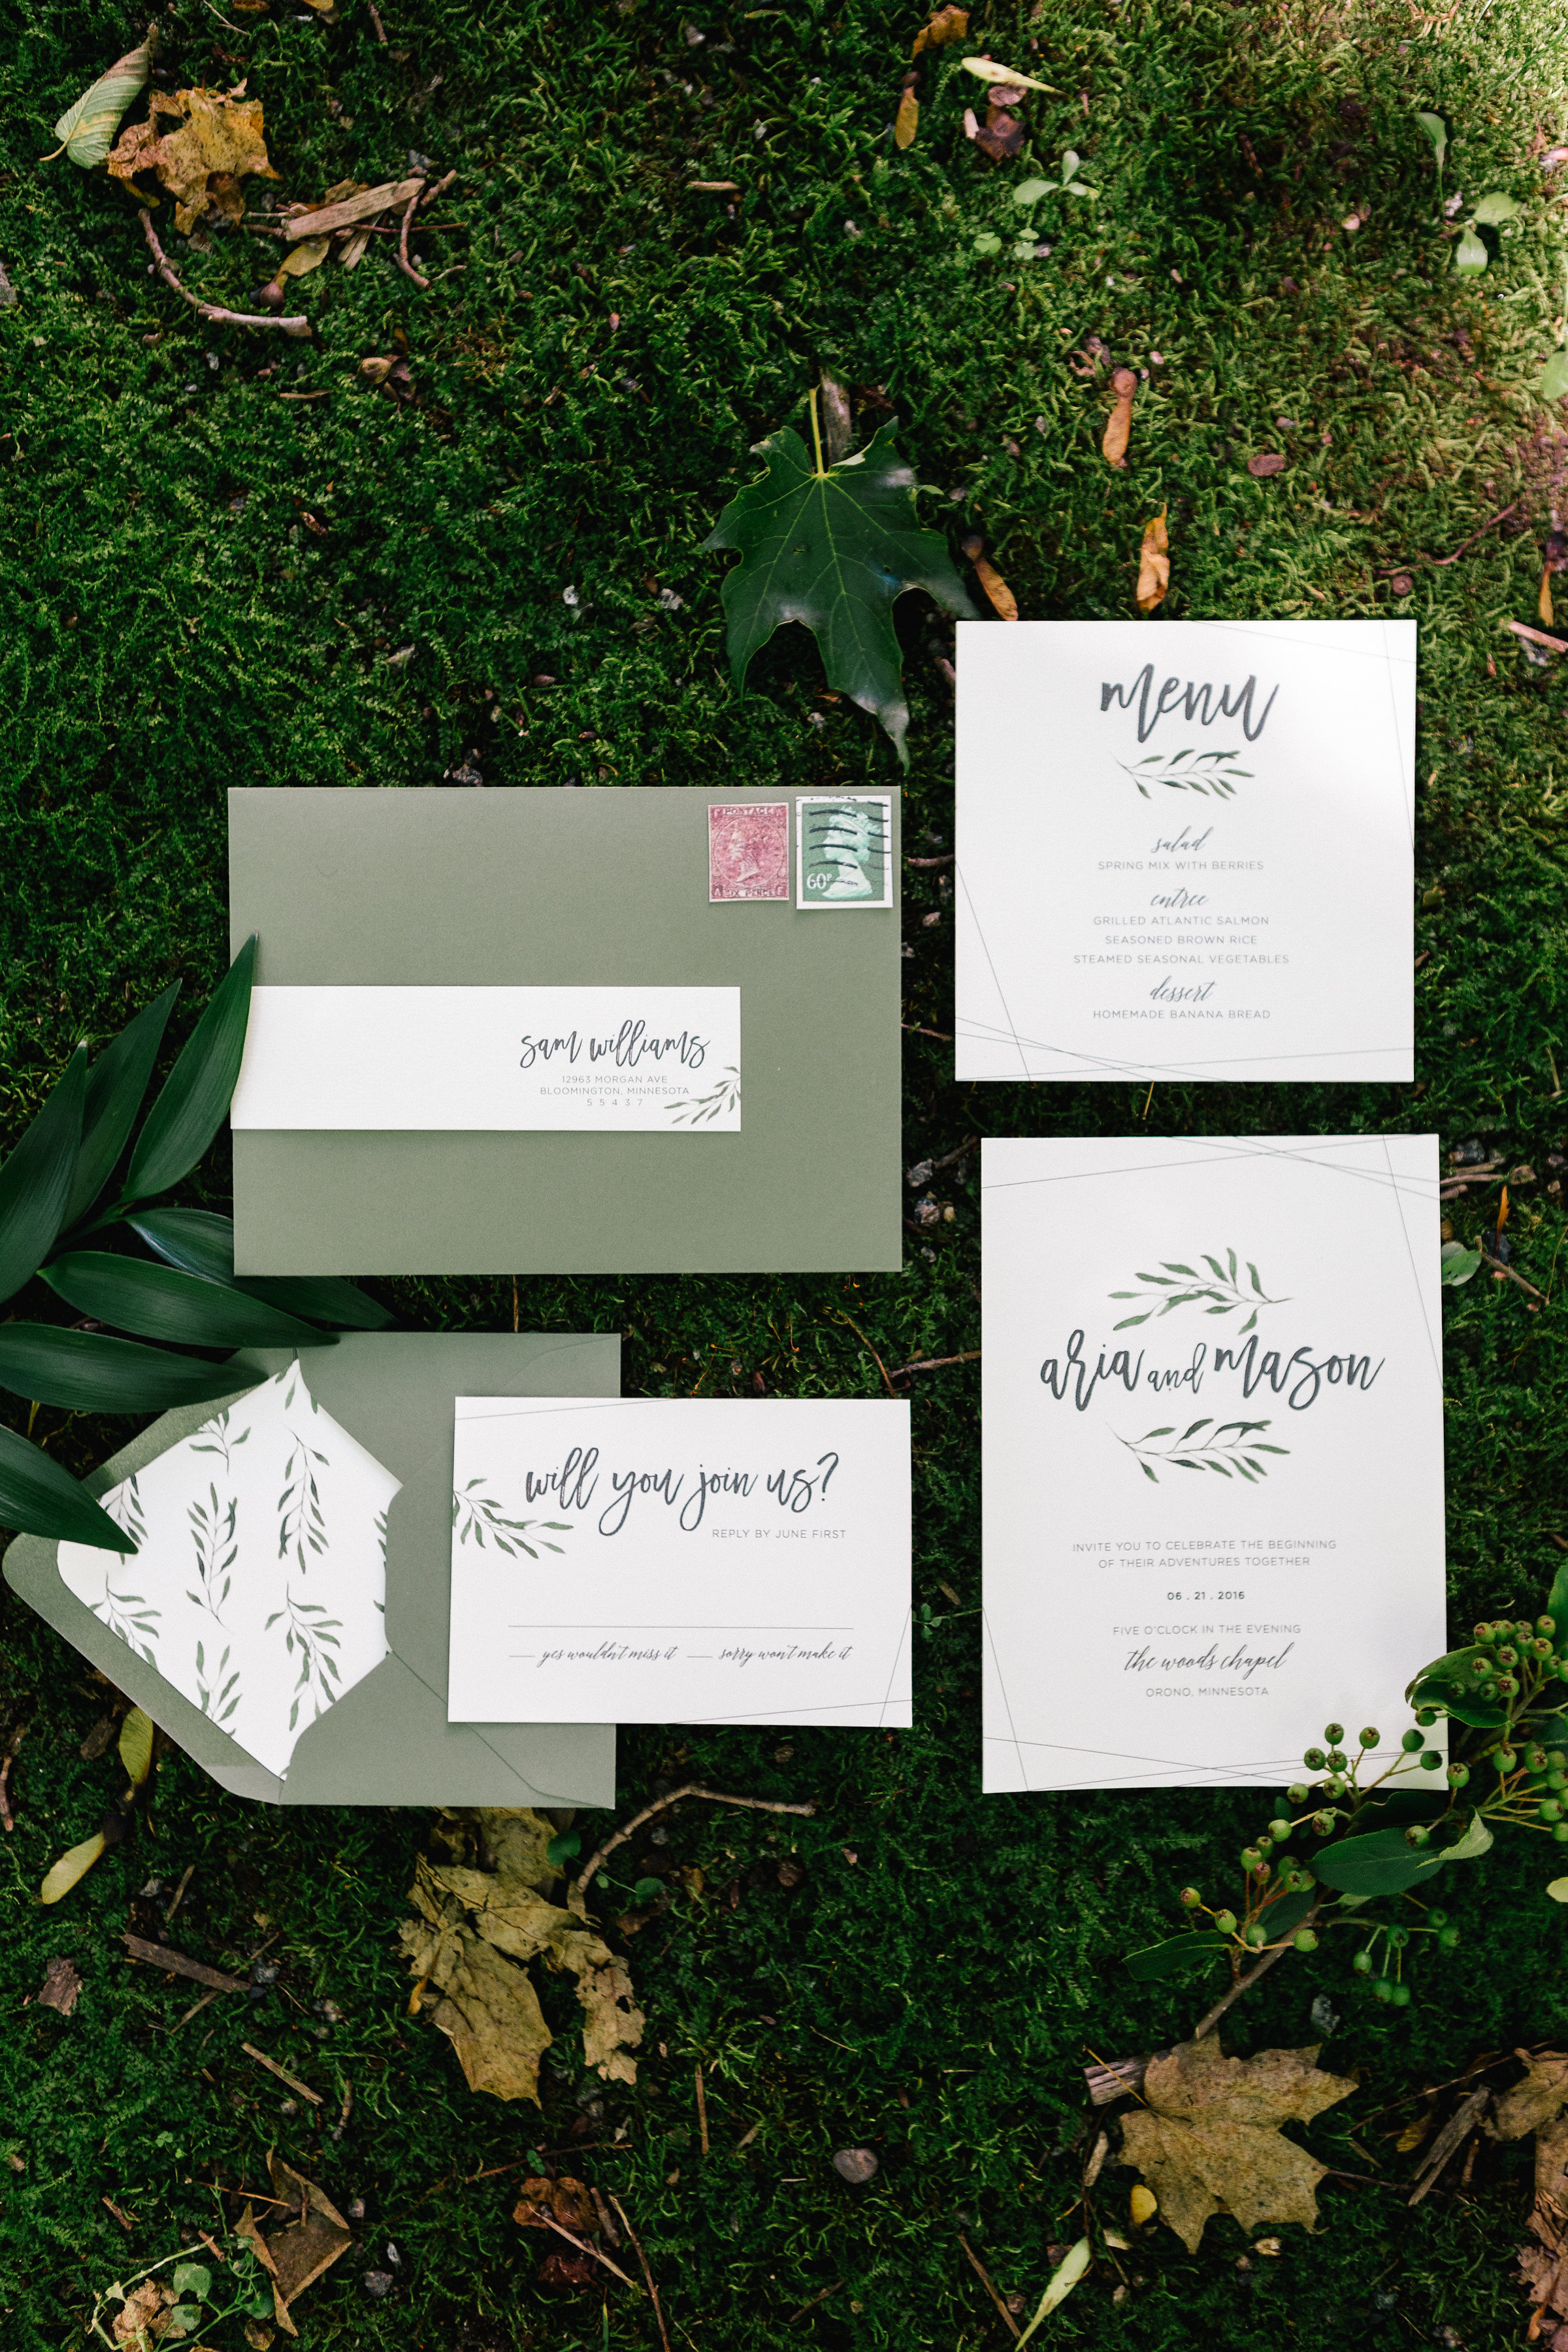 Allison_Hopperstad_Photography_Acowsay_Wedding_Invites.JPG